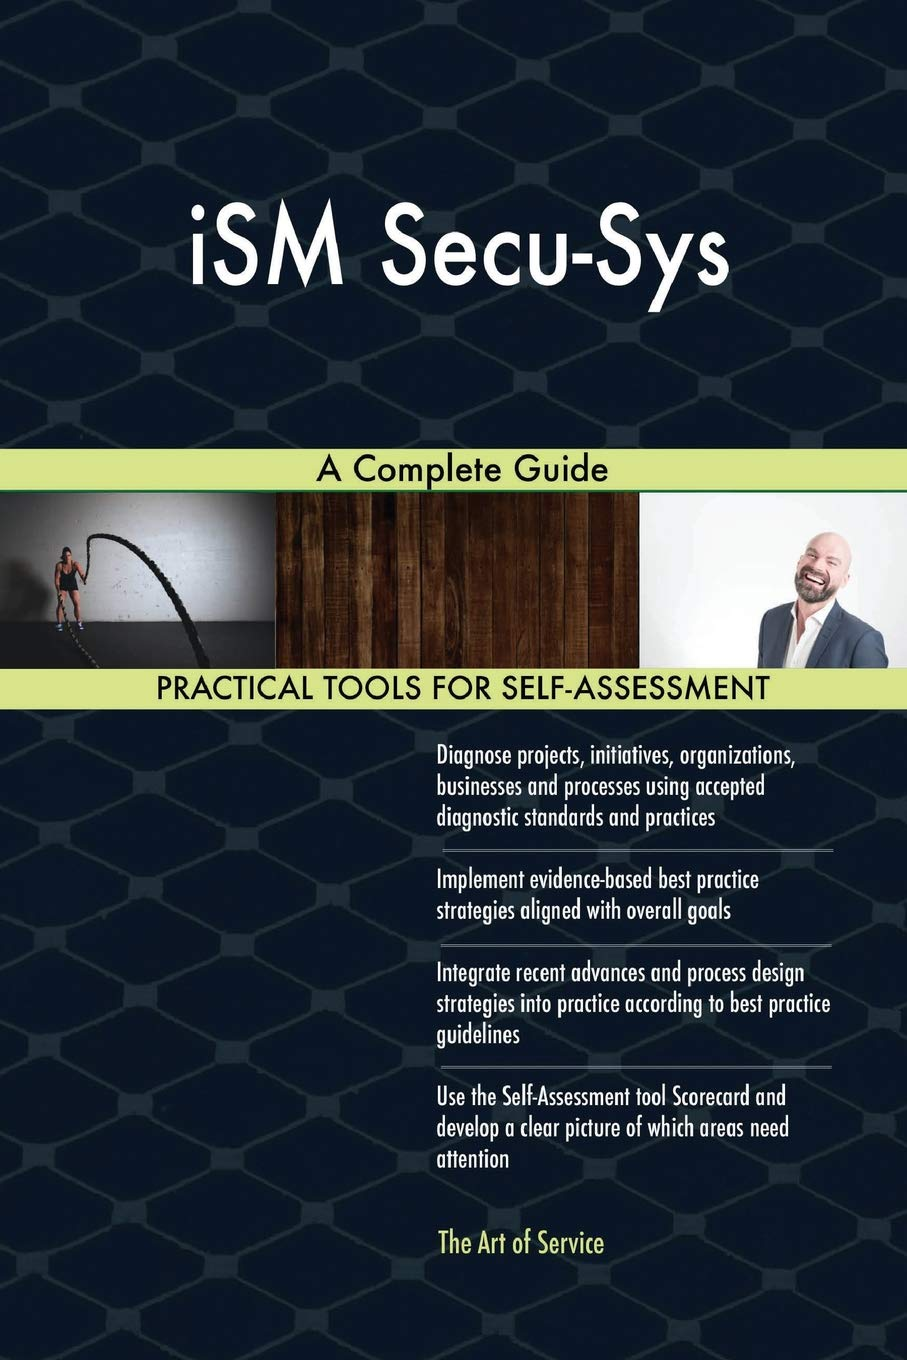 Ism Secu-Sys a Complete Guide: Gerardus Blokdyk